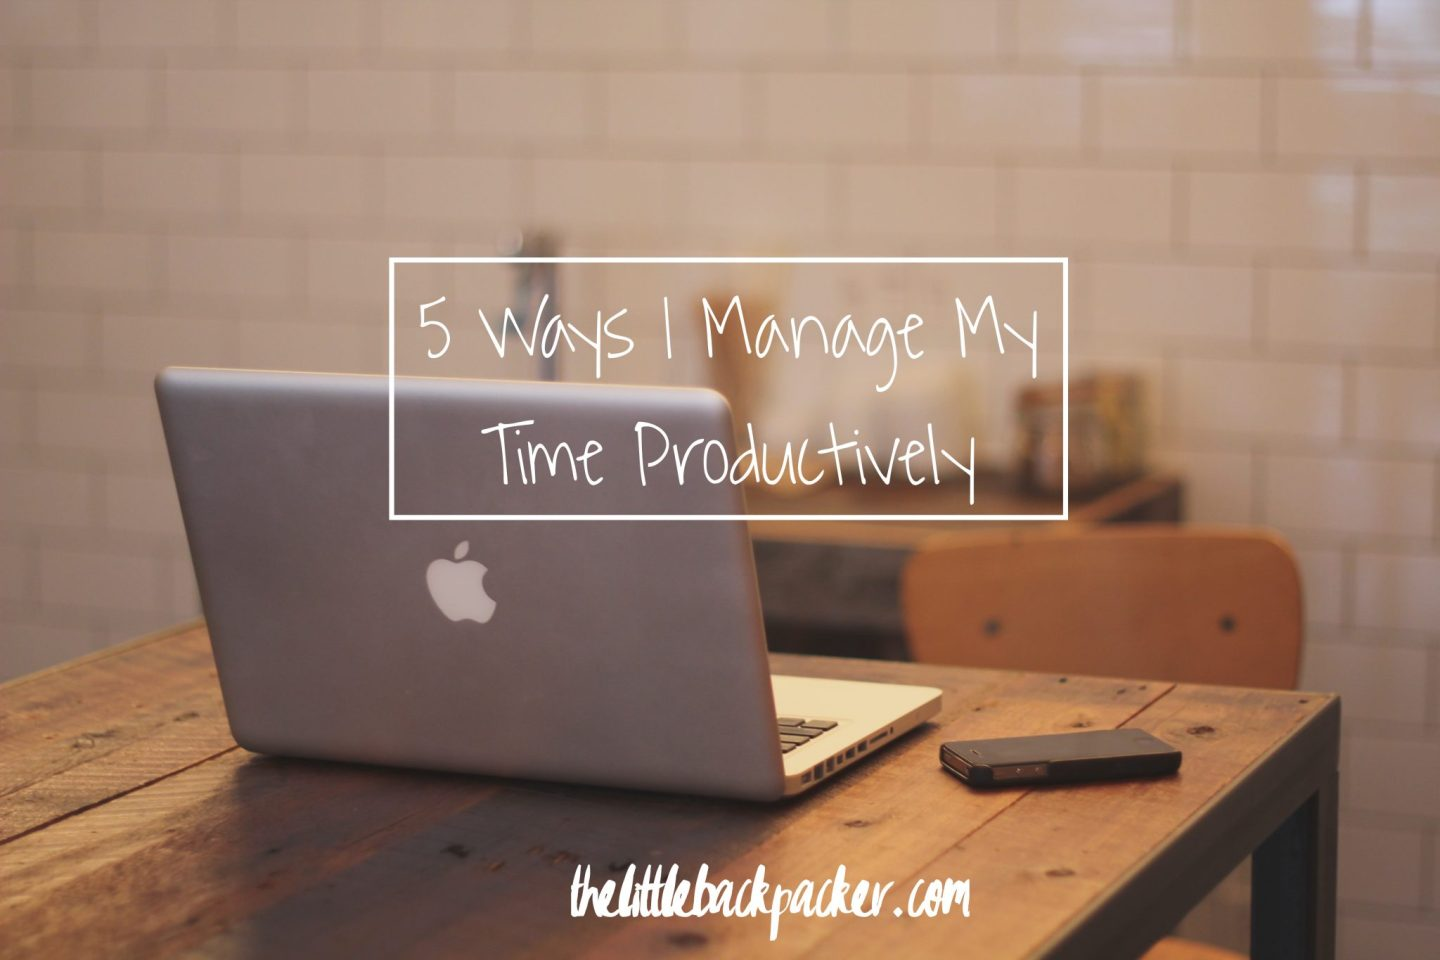 Five Ways I Manage My Time Productively